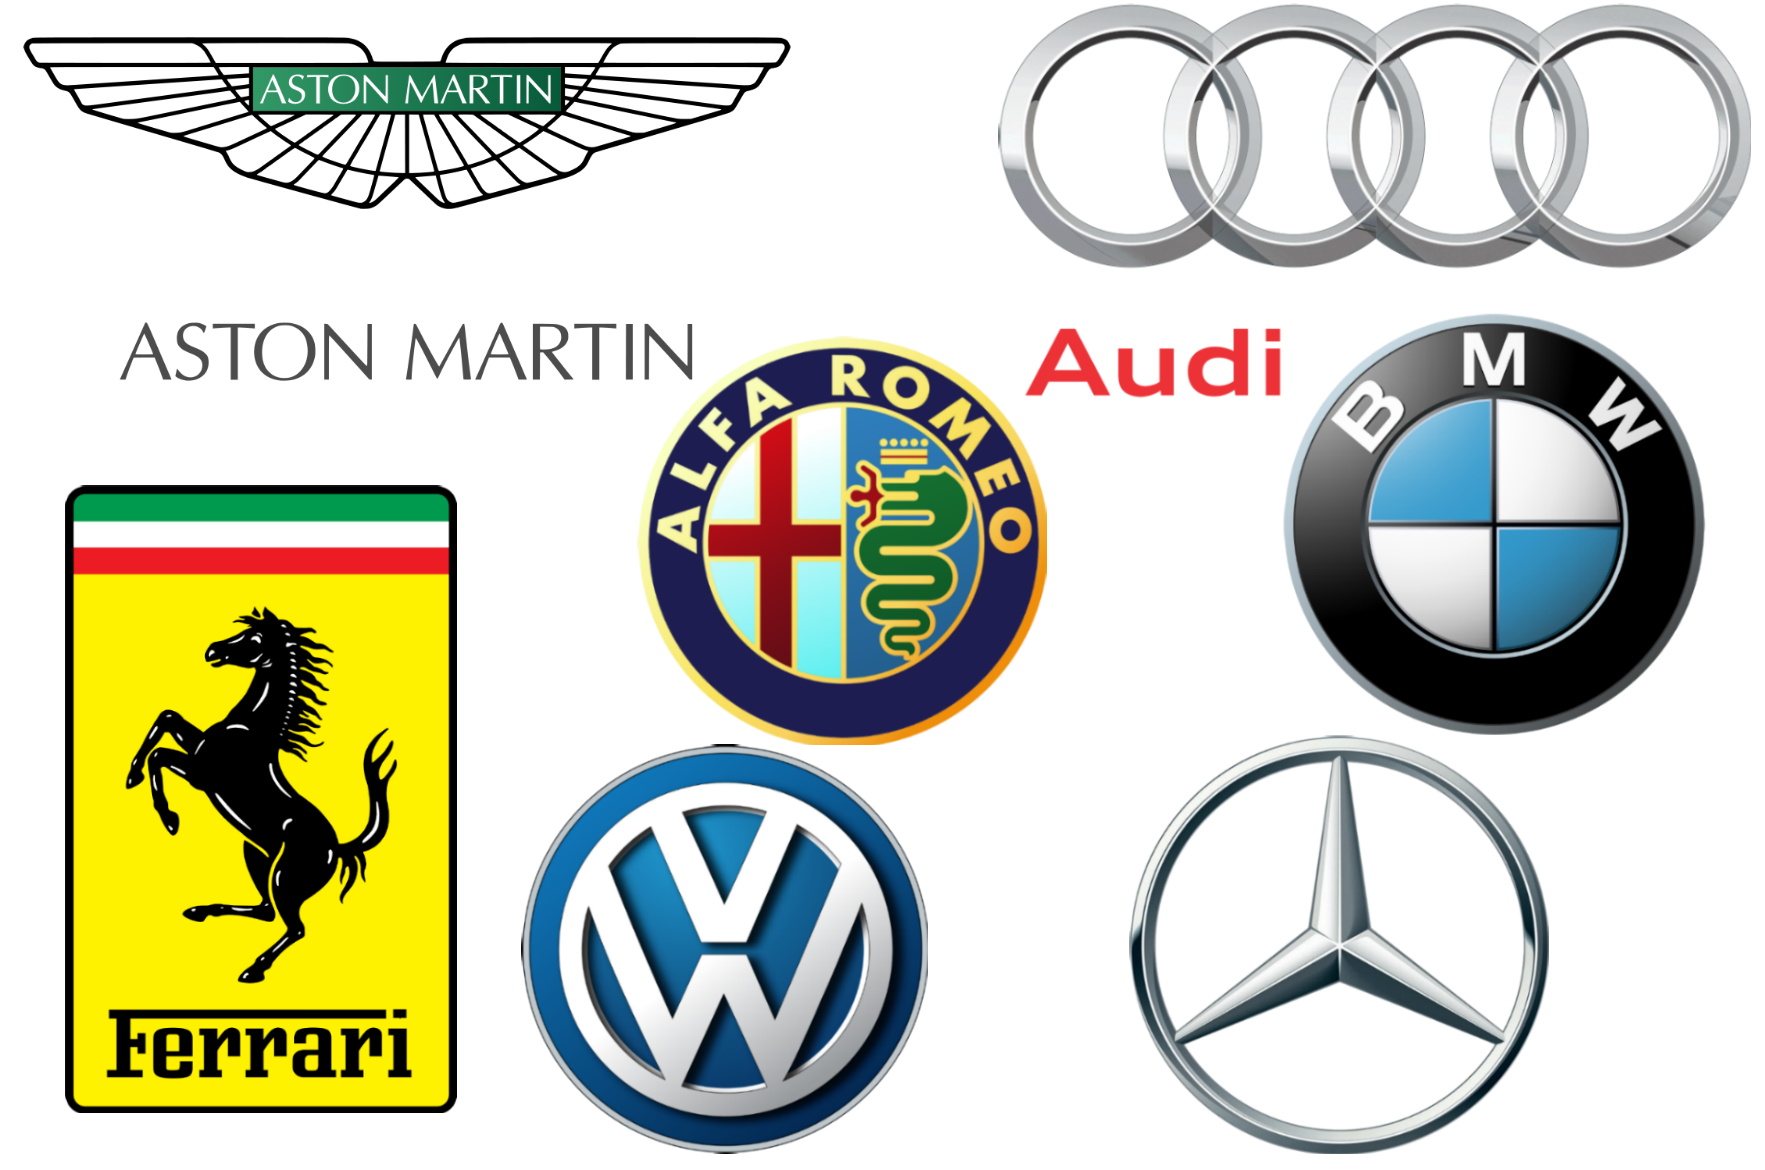 All Car Company >> European Car Brands Companies And Manufacturers Car Brand Names Com